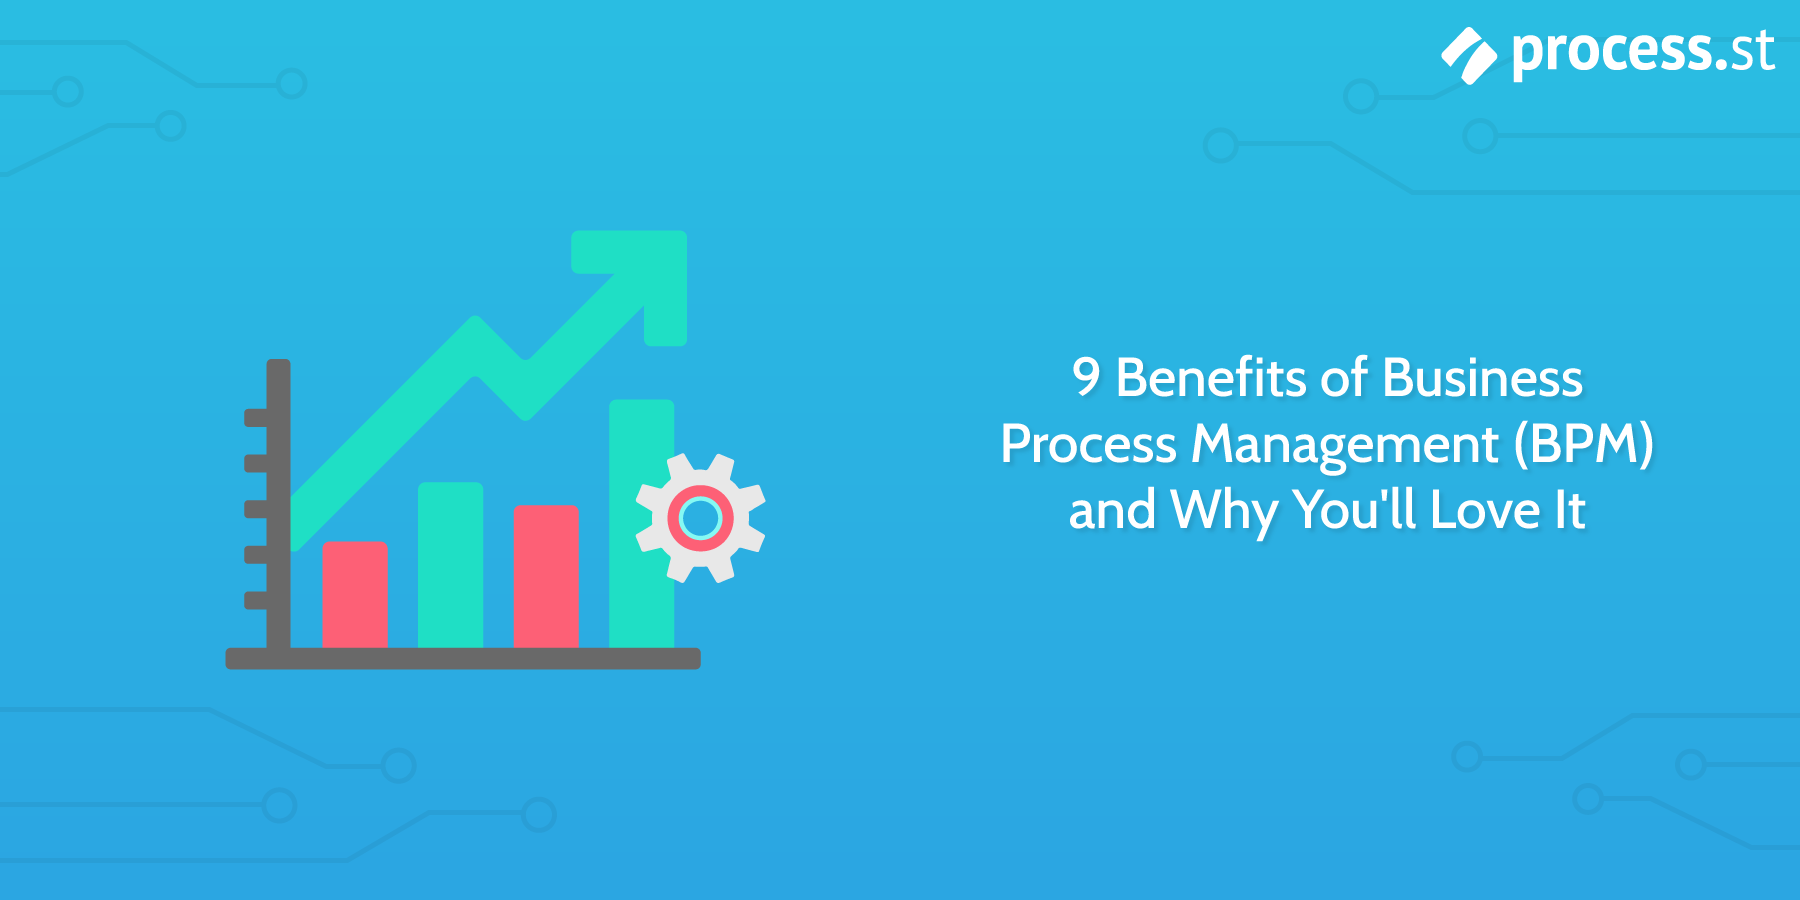 benefits of bpm business process management